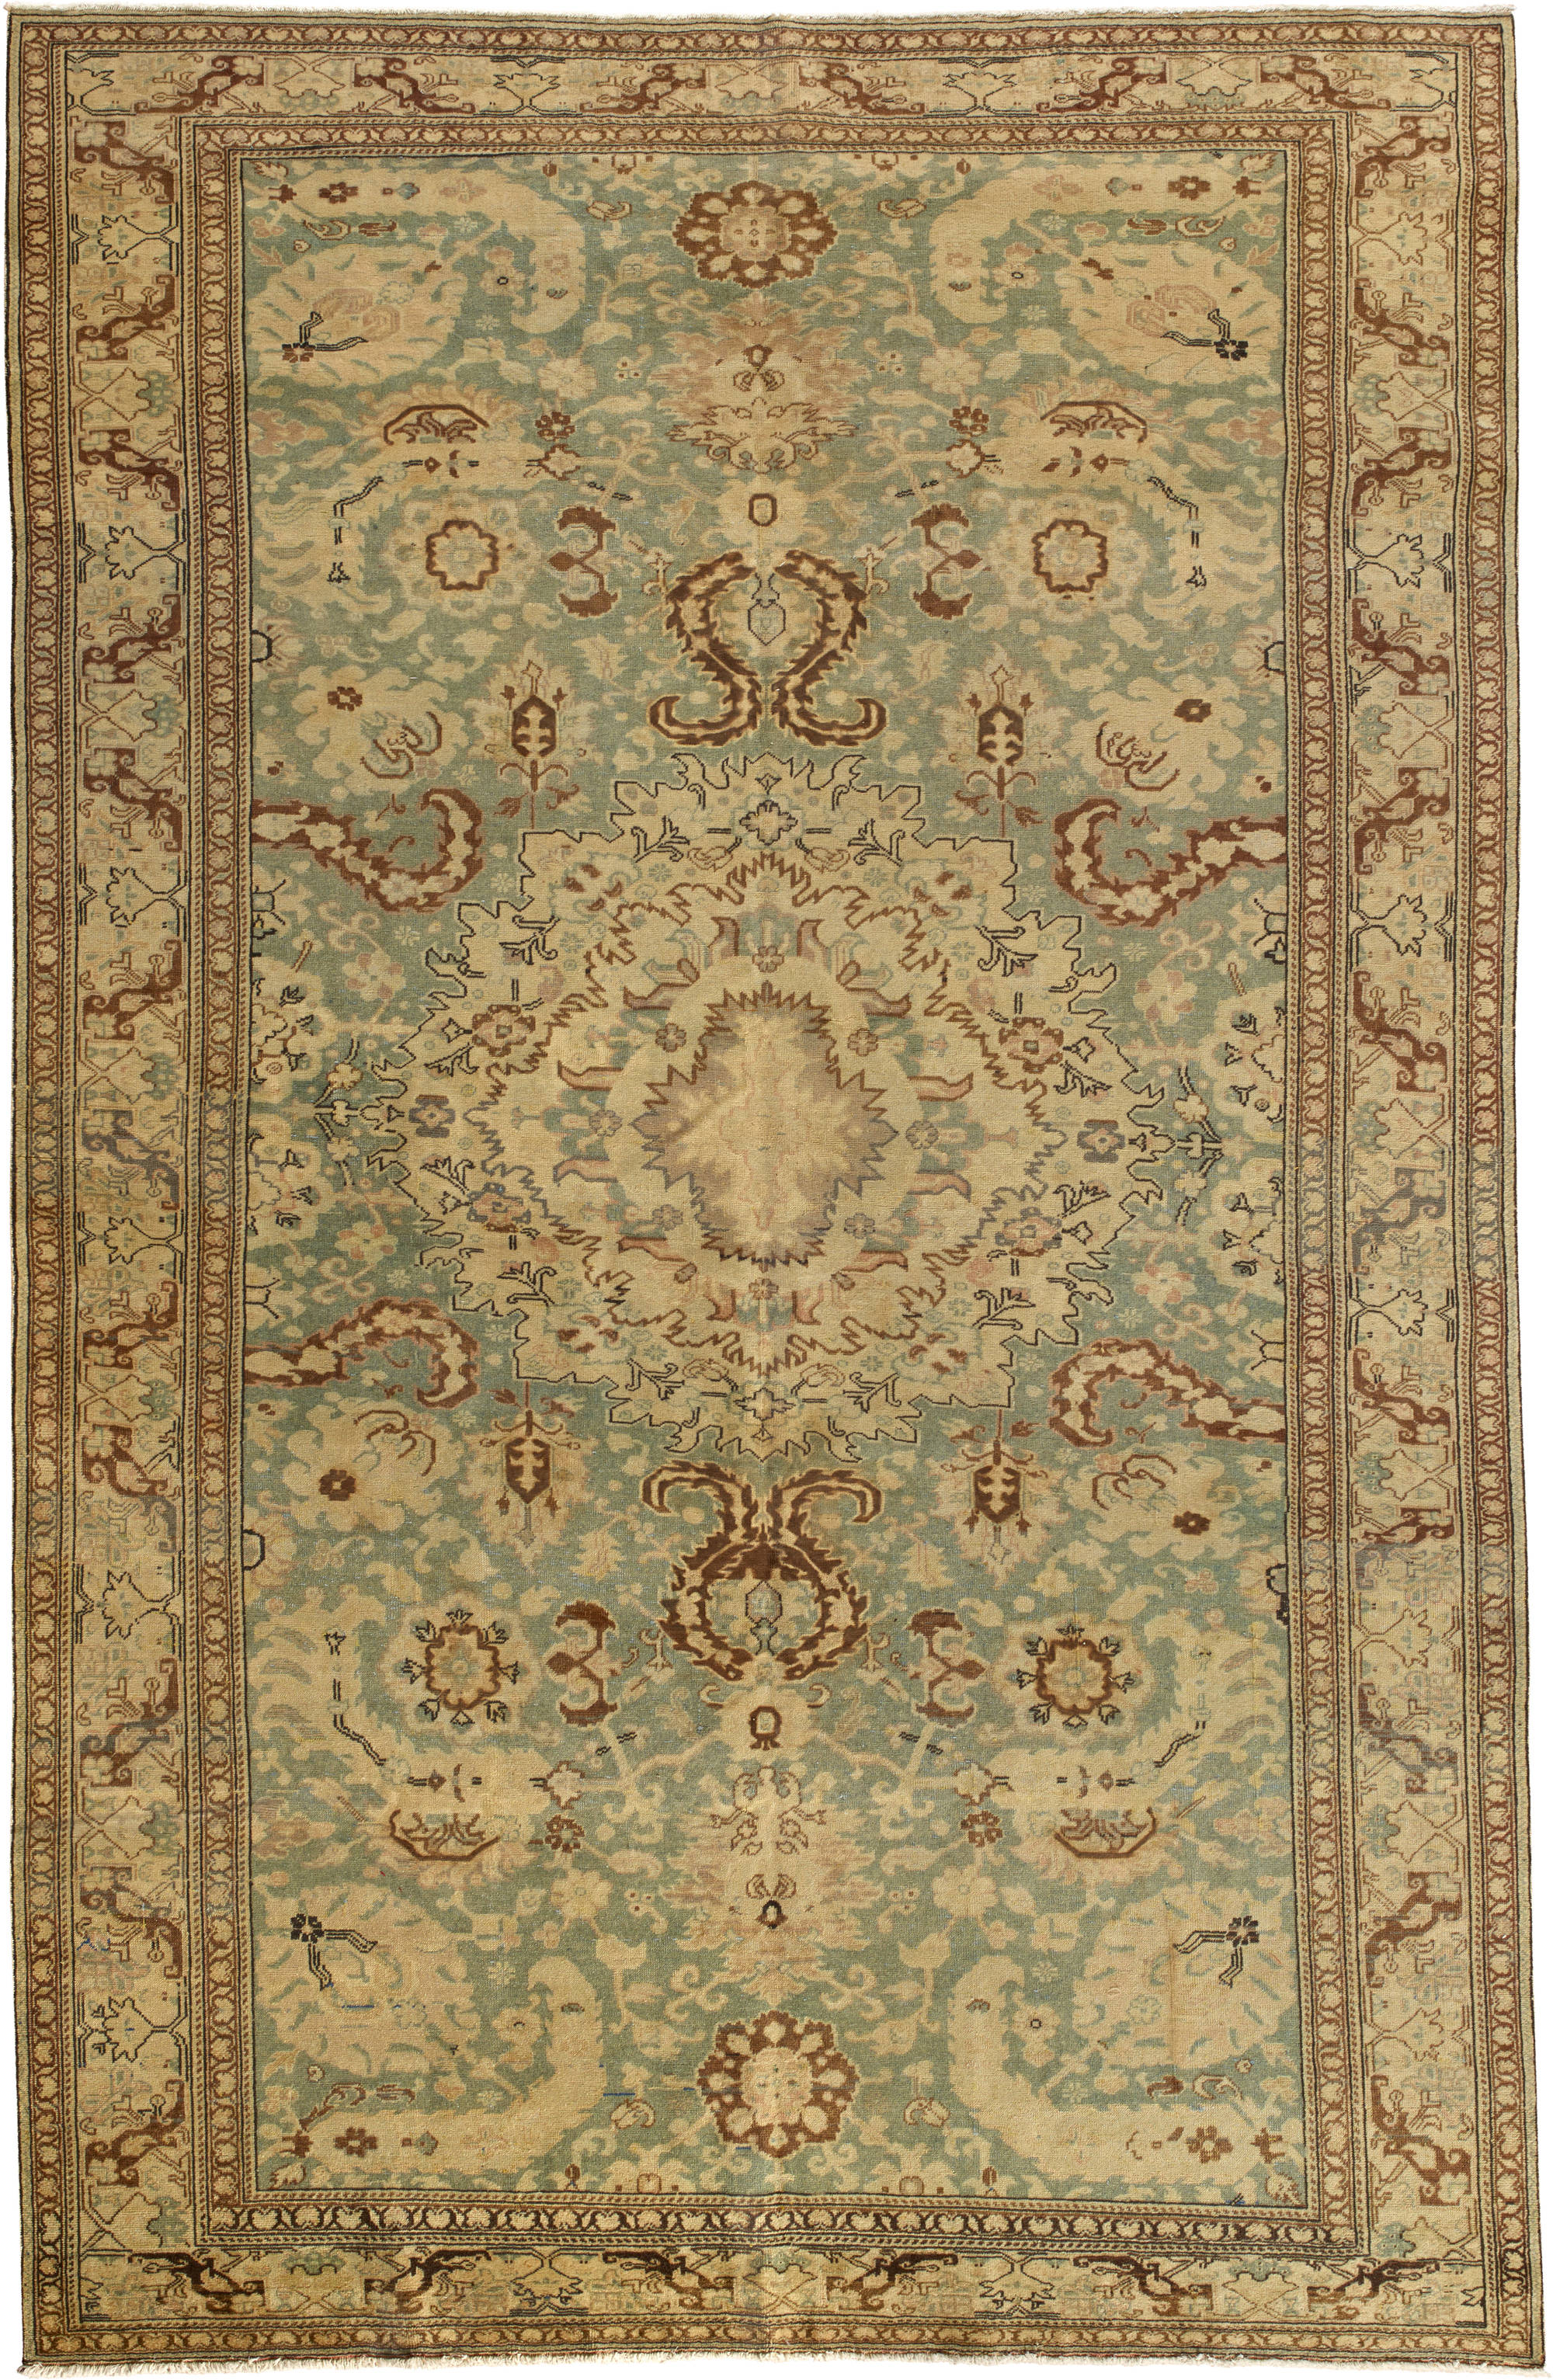 Antique Turkish Sivas Rug Bb5710 By Doris Leslie Blau